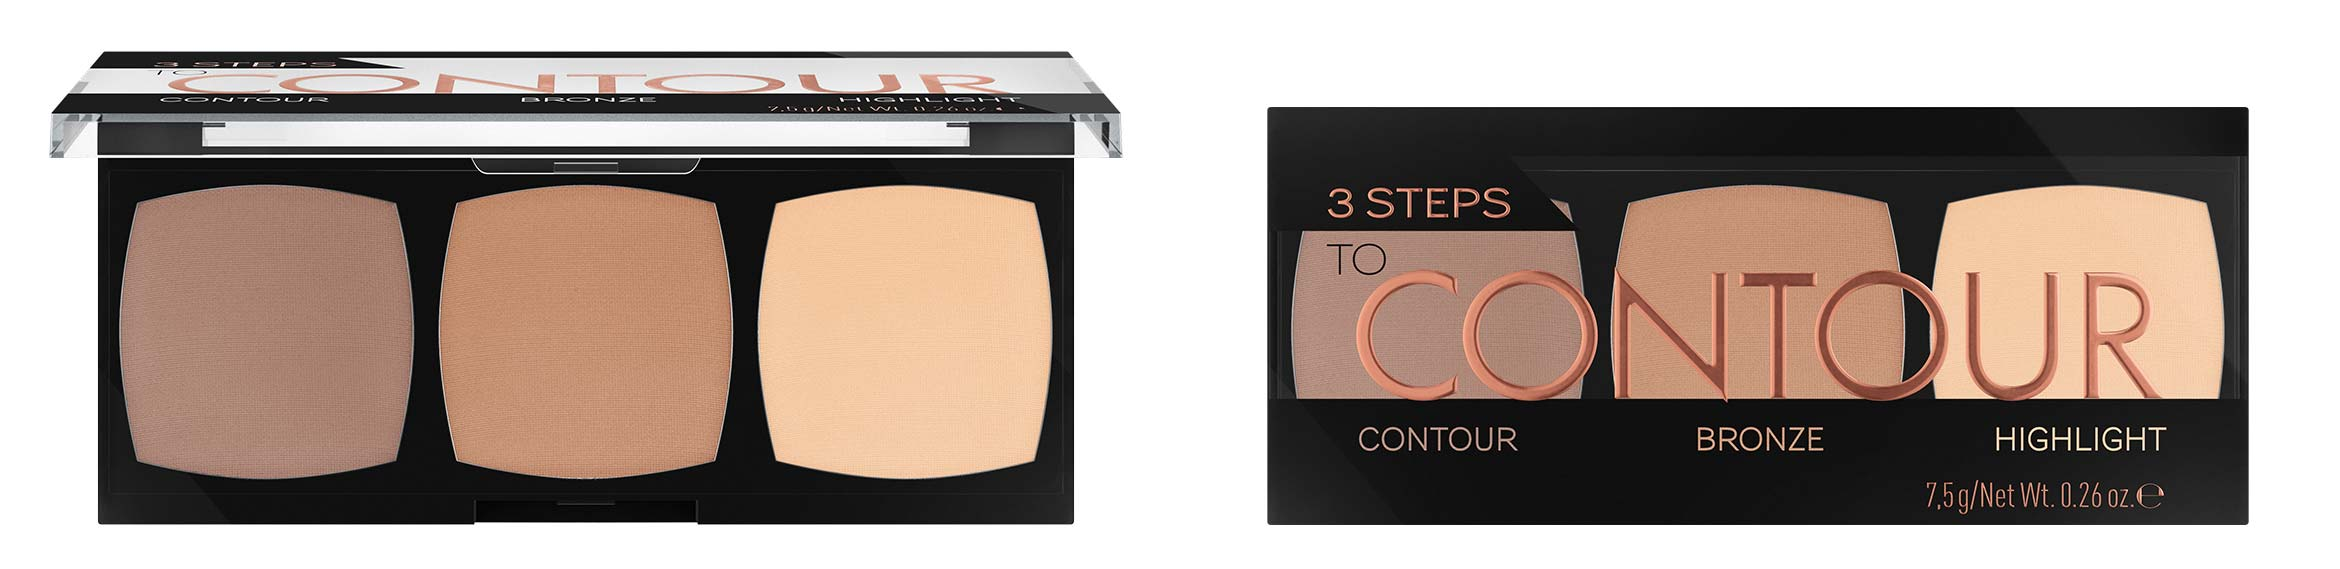 catrice-steps-to-contour-palette